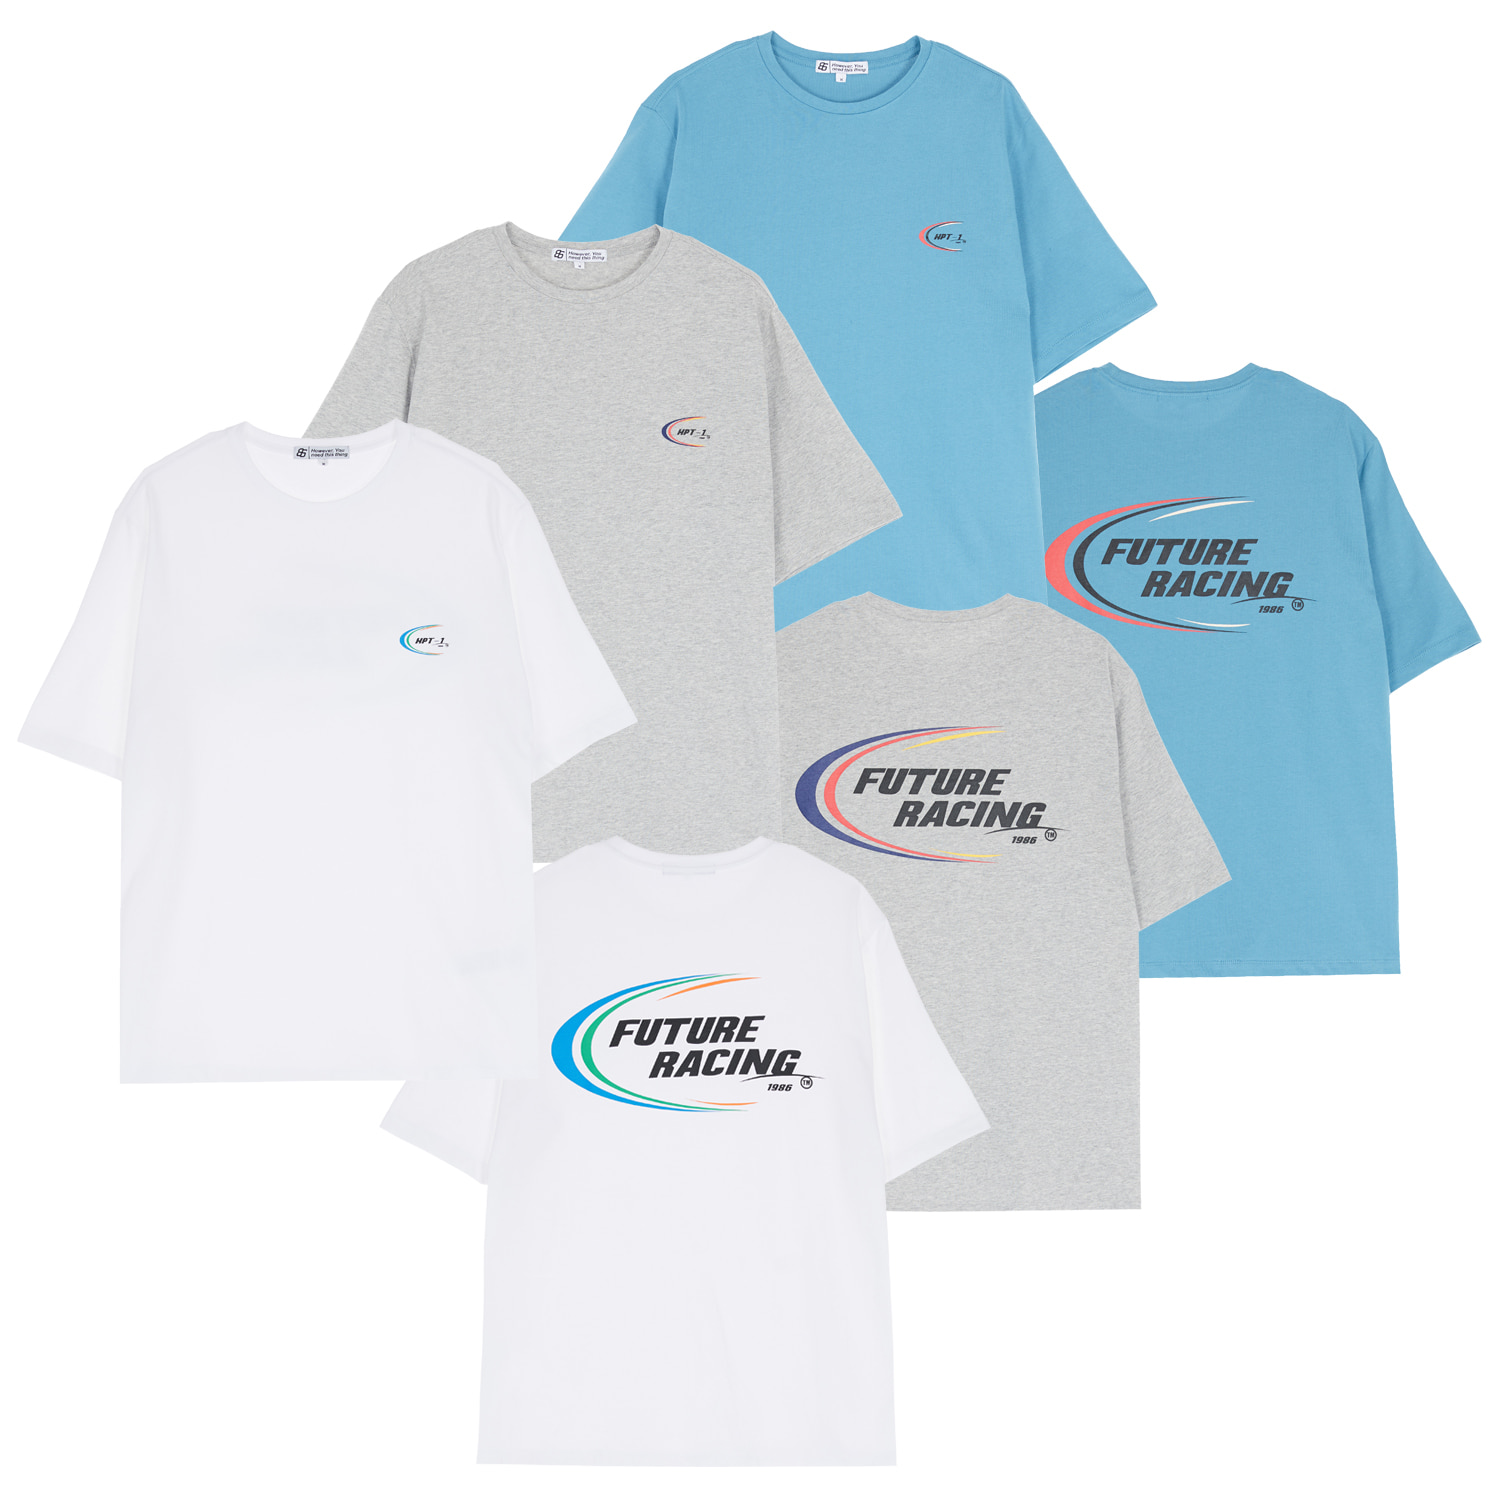 FUTURE RACING T-SHIRTS